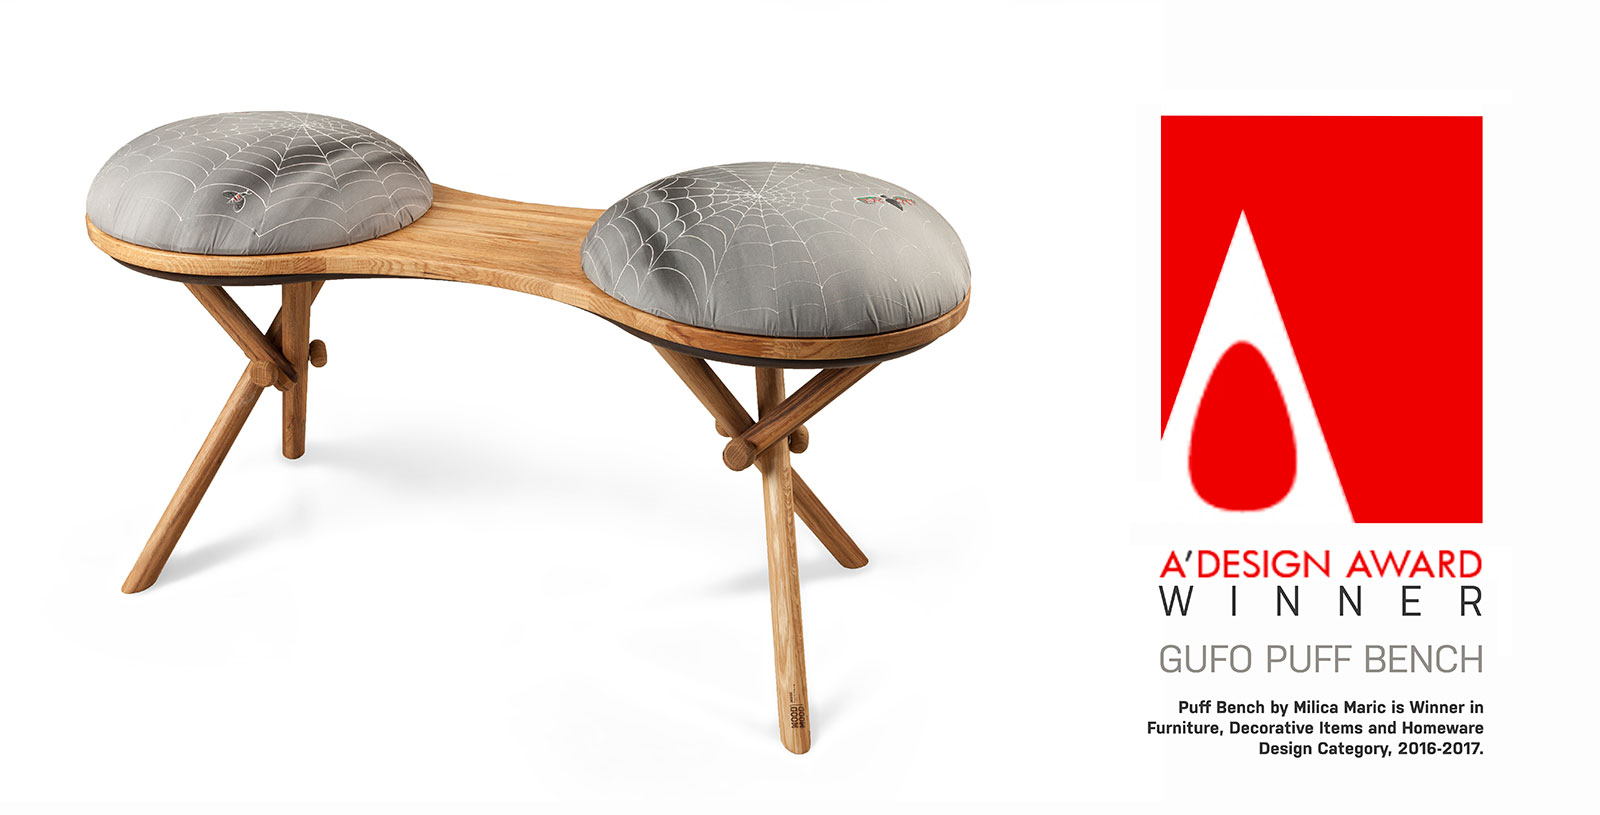 Wood mood design by milica mari for Chair design awards